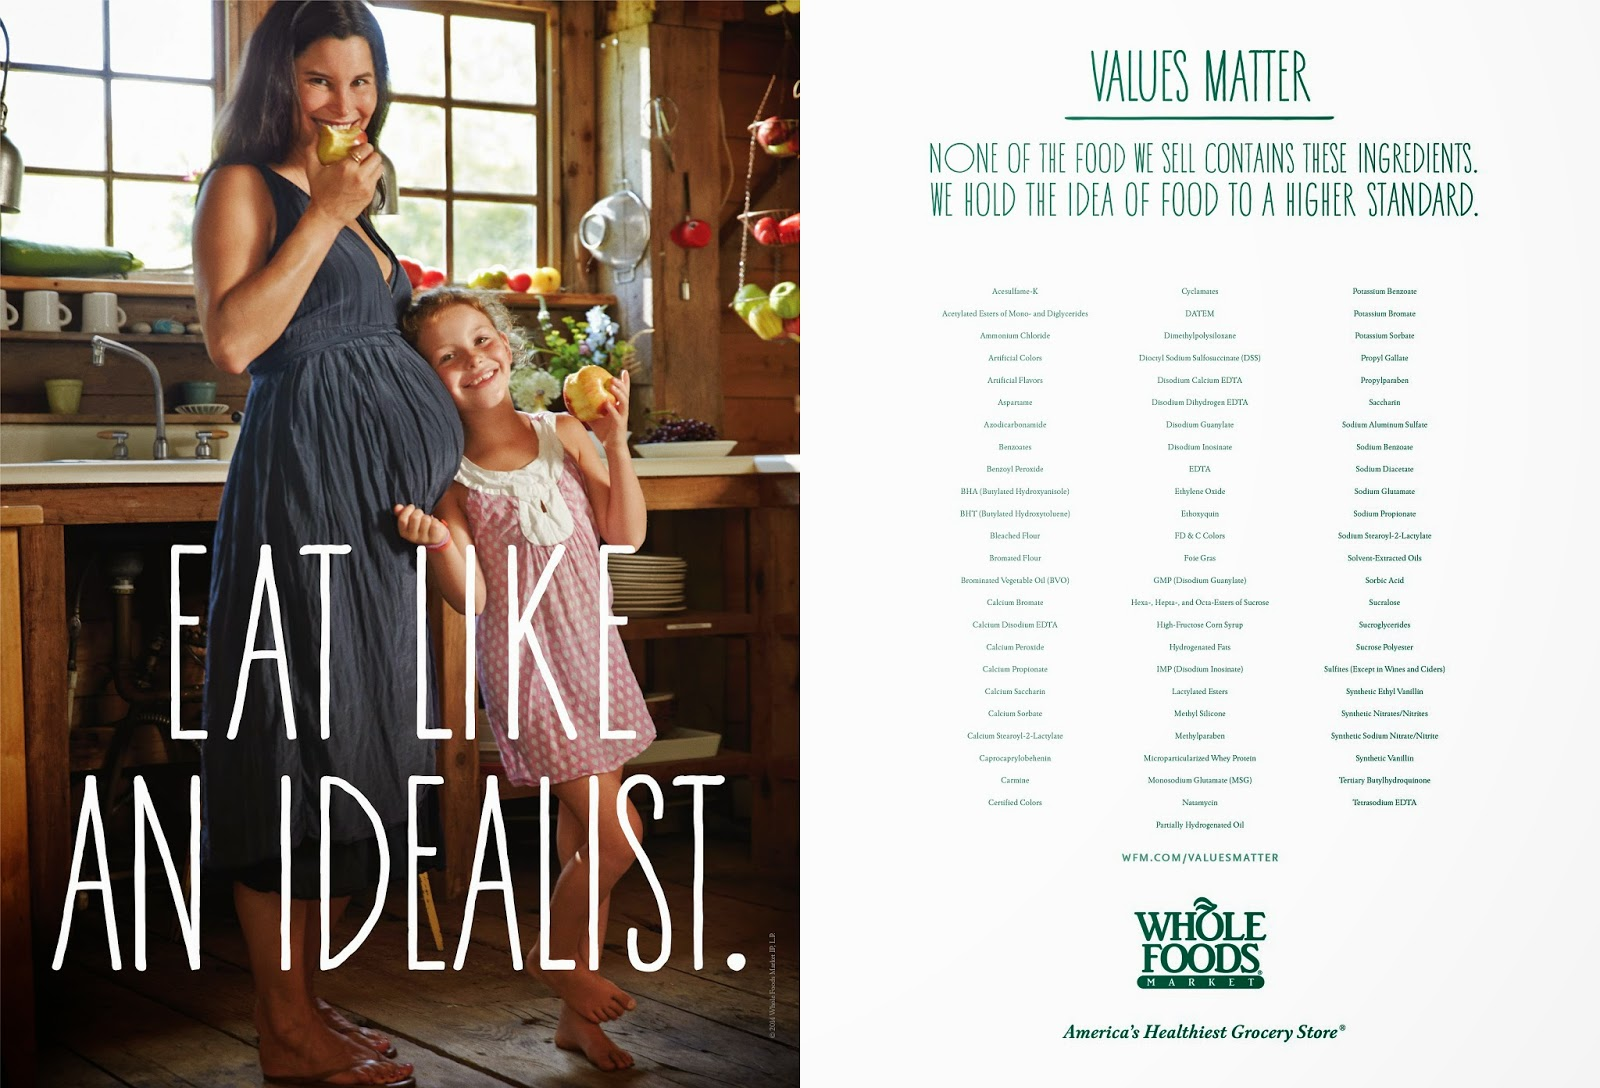 "WHOLE FOOD - WHOLE IDEALISM vs PRAGMATISM : WHOLE FOODS LAUNCHED A VERY EXPENSIVE ADVERTISEMENT CAMPAIGN TO PROMOTE ITS VISION, ITS PHILOSOPHY OF IDEALISM IN EATING, AND TO CALL ITSELF AS ""AMERICA'S HEALTHIEST GROCERY STORE."""